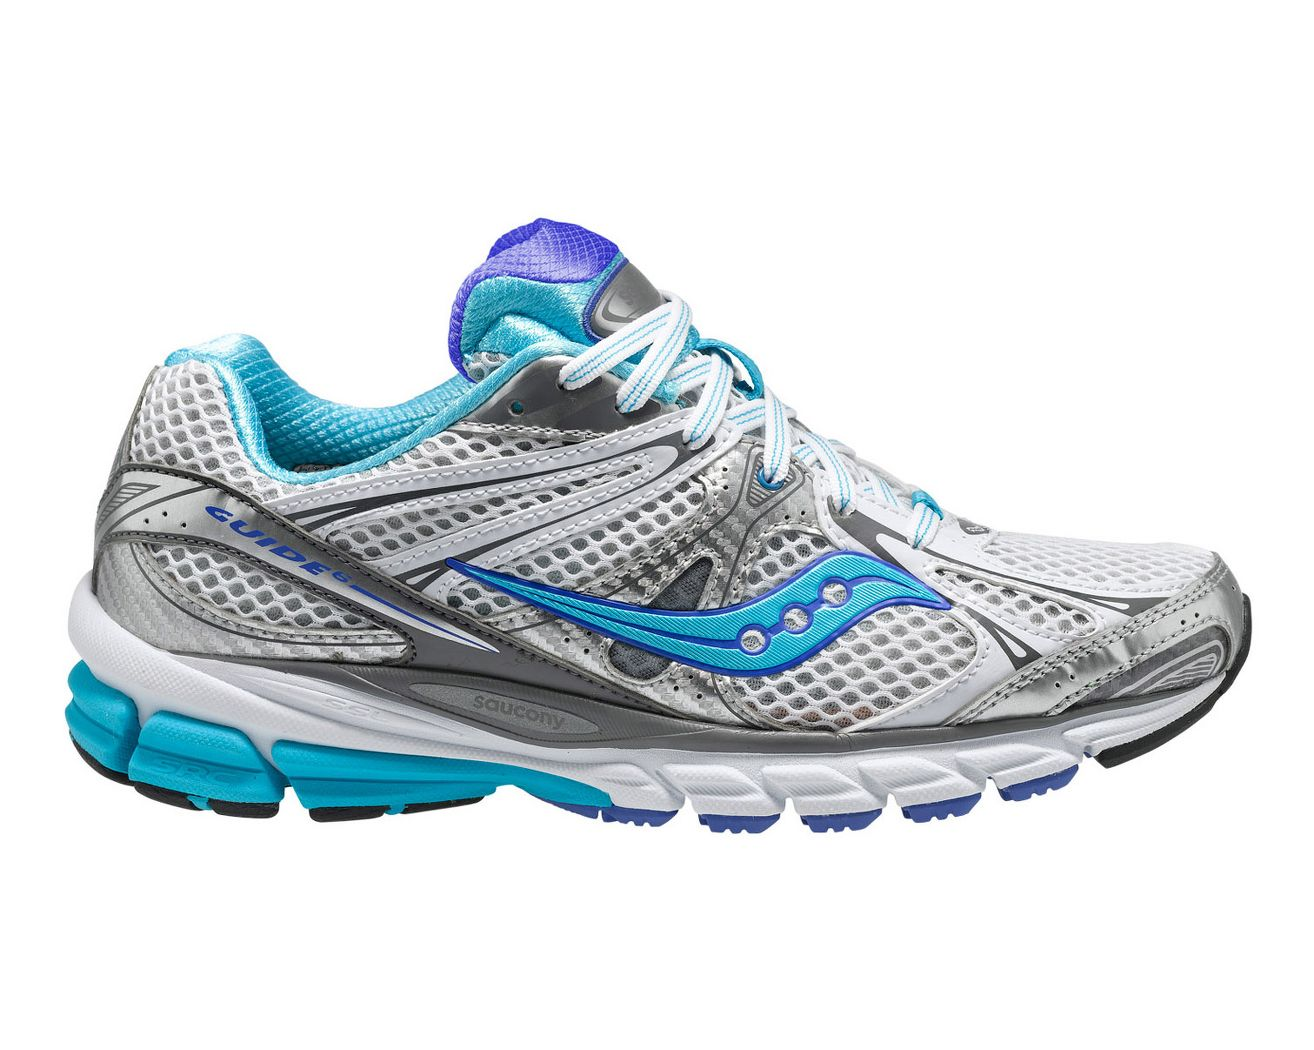 Saucony Powergrid Guide 6